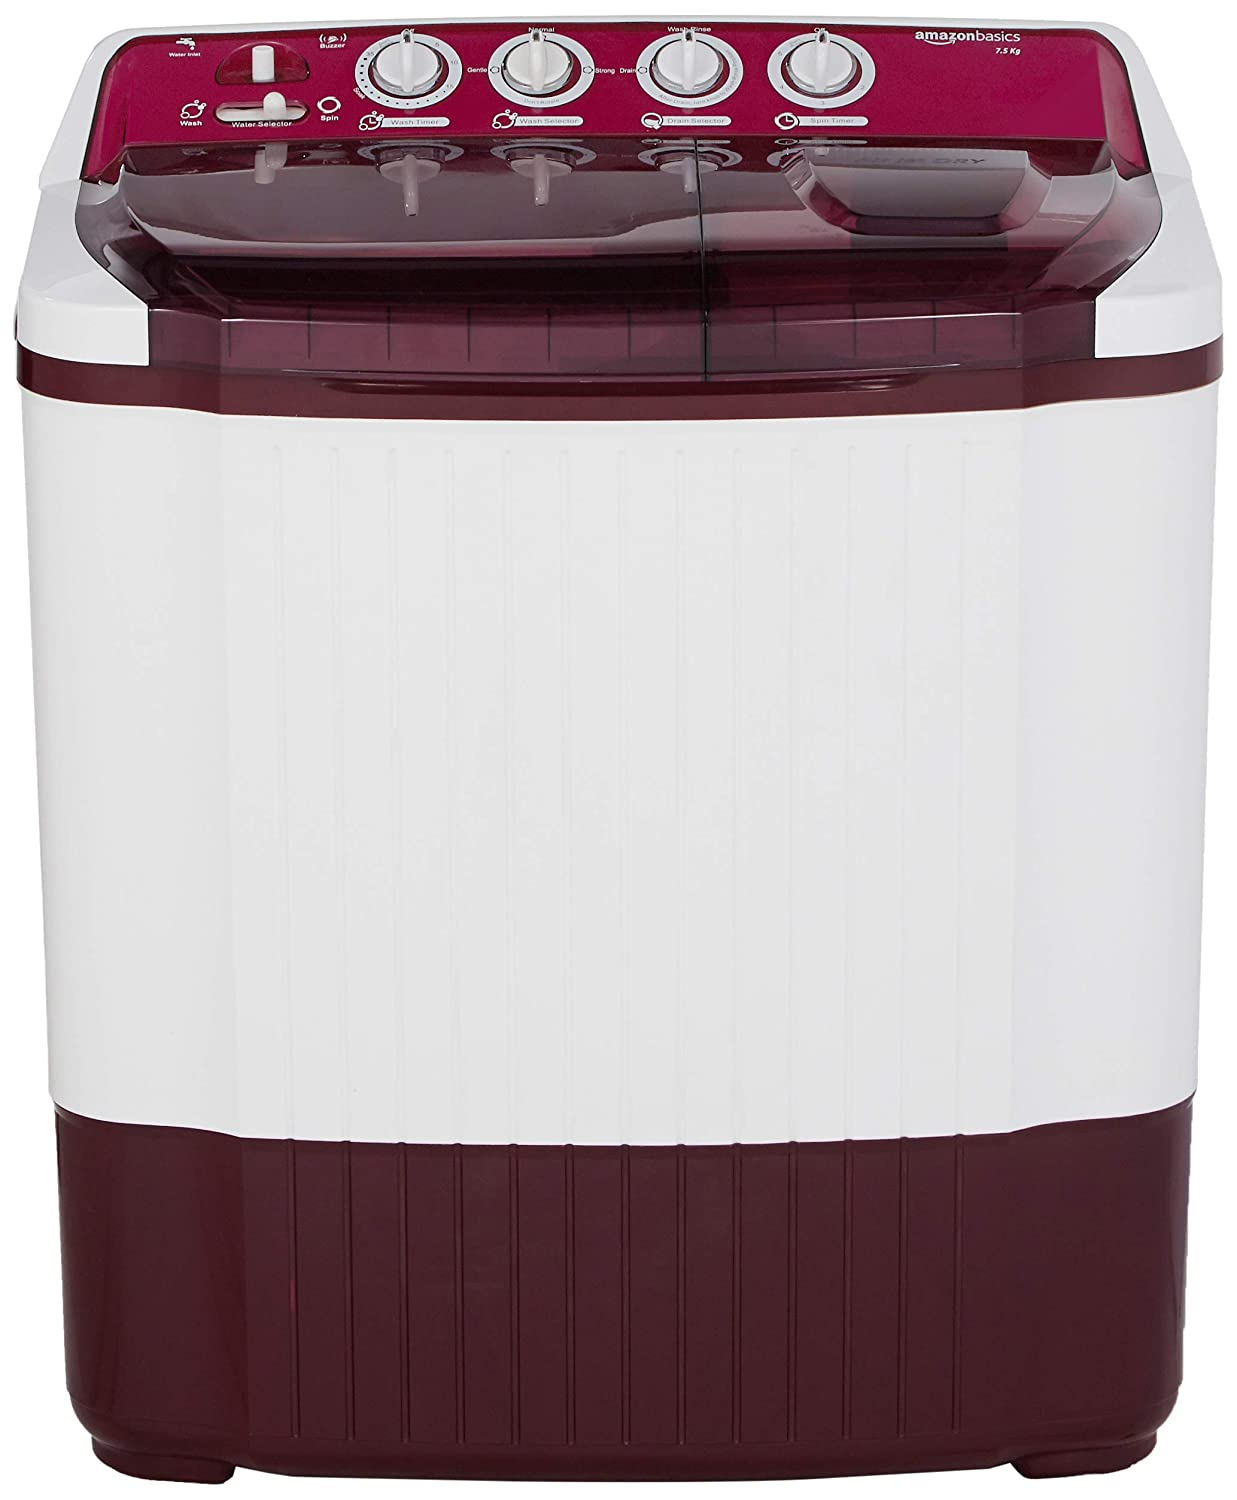 Best Washing machine under 10000 Rs if you are Lacking Space (Money) 1